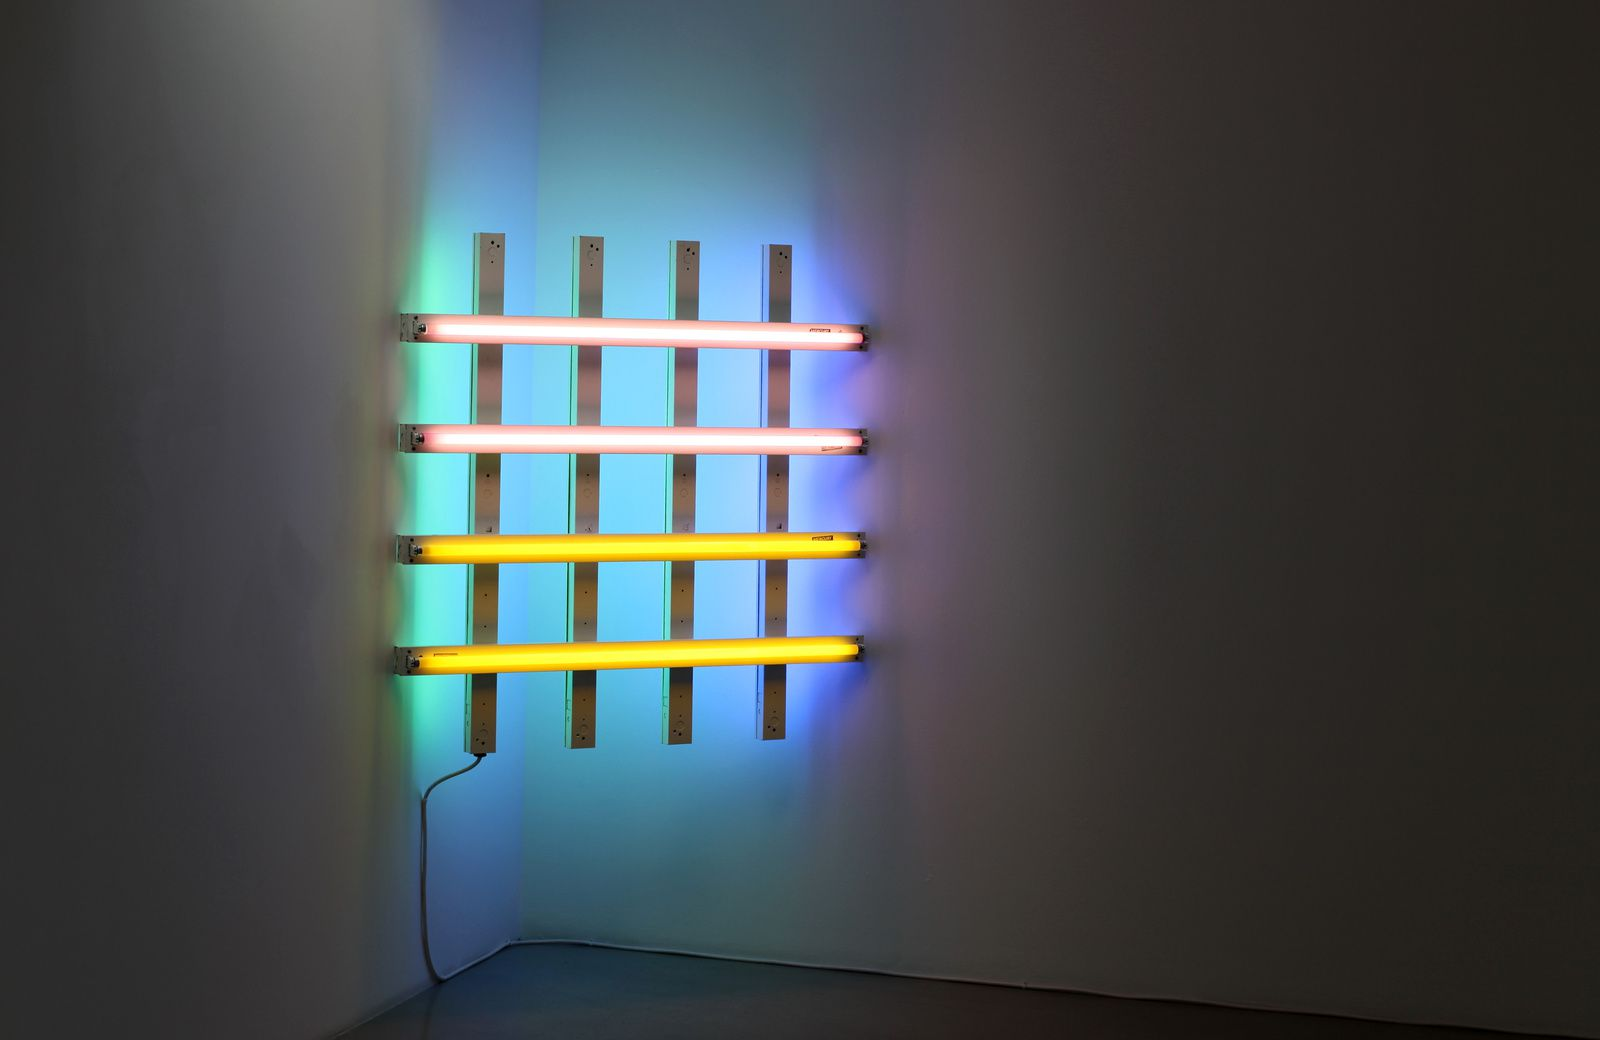 """Untitled (in Honor of Harold Joachim) 2, 1977 de Dan Flavin - Courtesy Galerie Kamel Mennour © Photo Éric Simon"